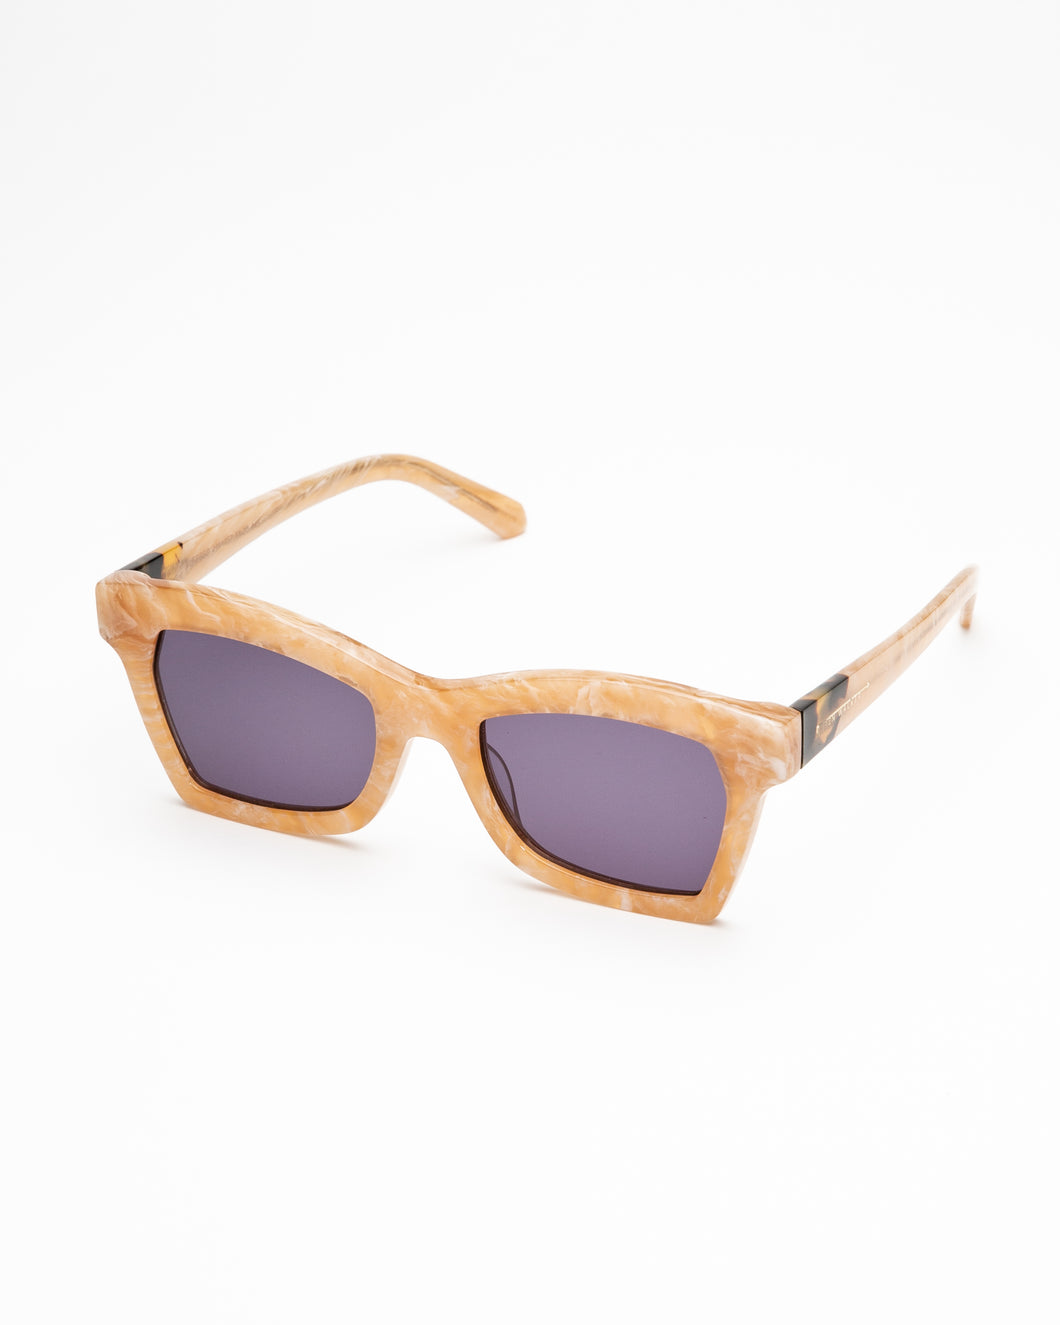 Coveteur x Karen Walker Sunglasses